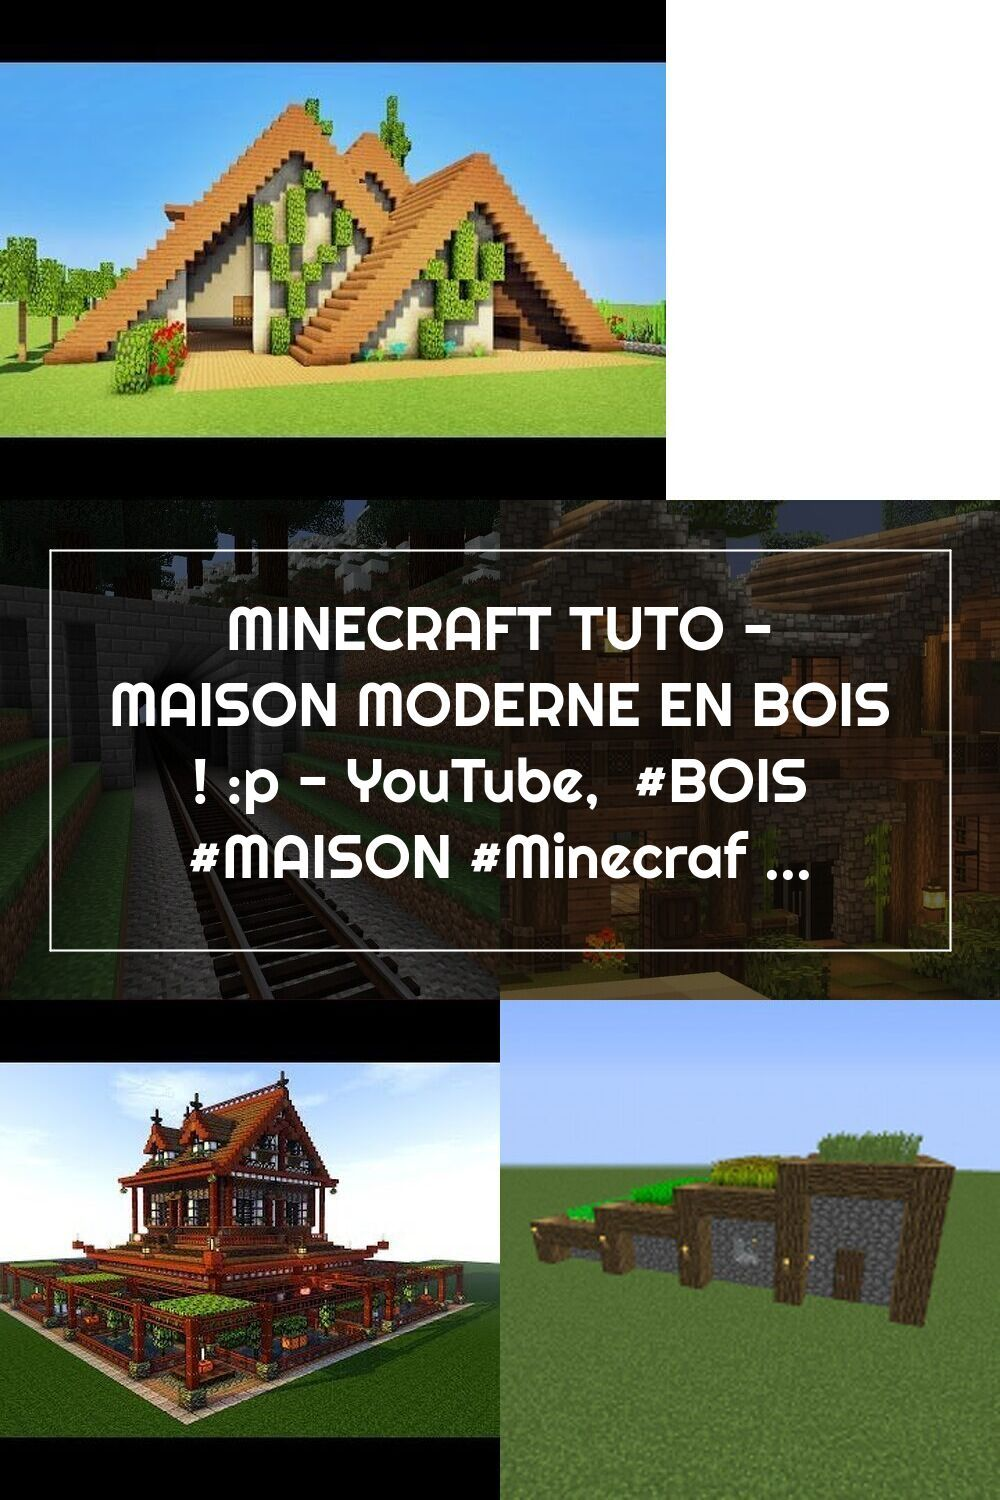 Minecraft Tuto Maison Moderne En Bois P Youtube Bois Maison Minecraft Minecraftmaison Moderne Tuto Youtu In 2020 House Styles Minecraft Houses Mansions